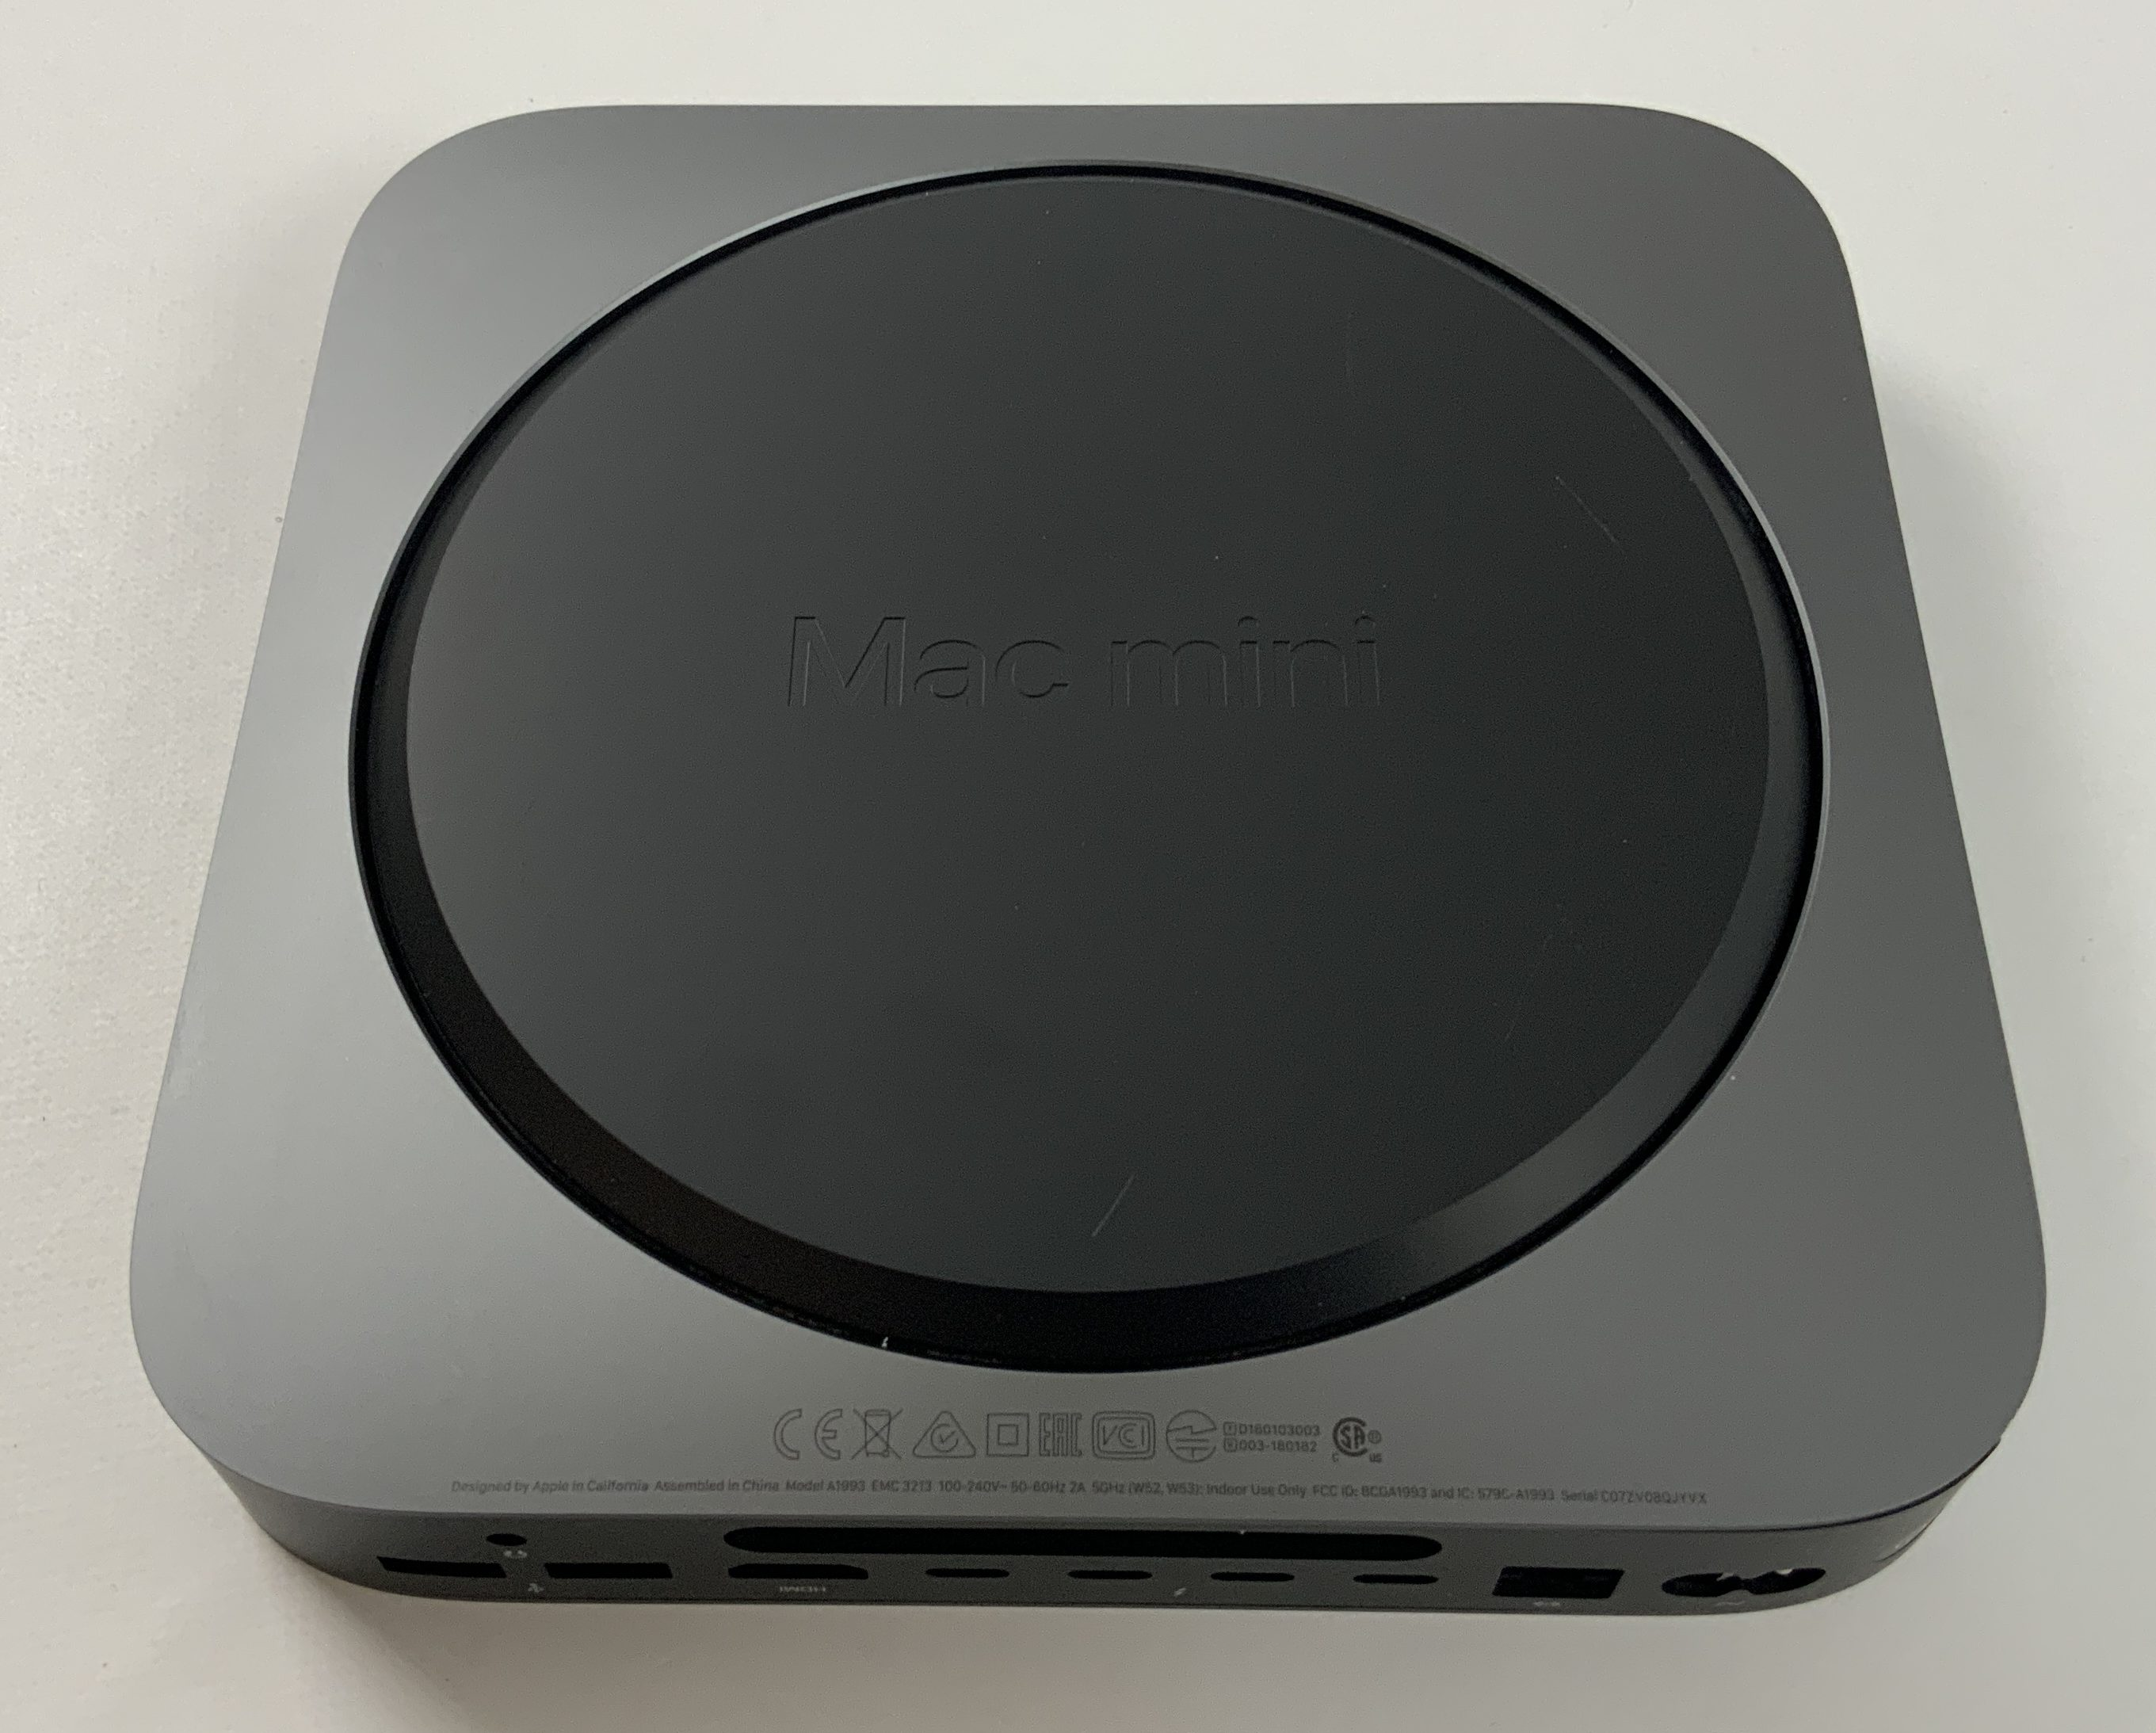 Mac Mini Late 2018 (Intel 6-Core i5 3.0 GHz 8 GB RAM 256 GB SSD), Intel 6-Core i5 3.0 GHz, 8 GB RAM, 256 GB SSD, immagine 2